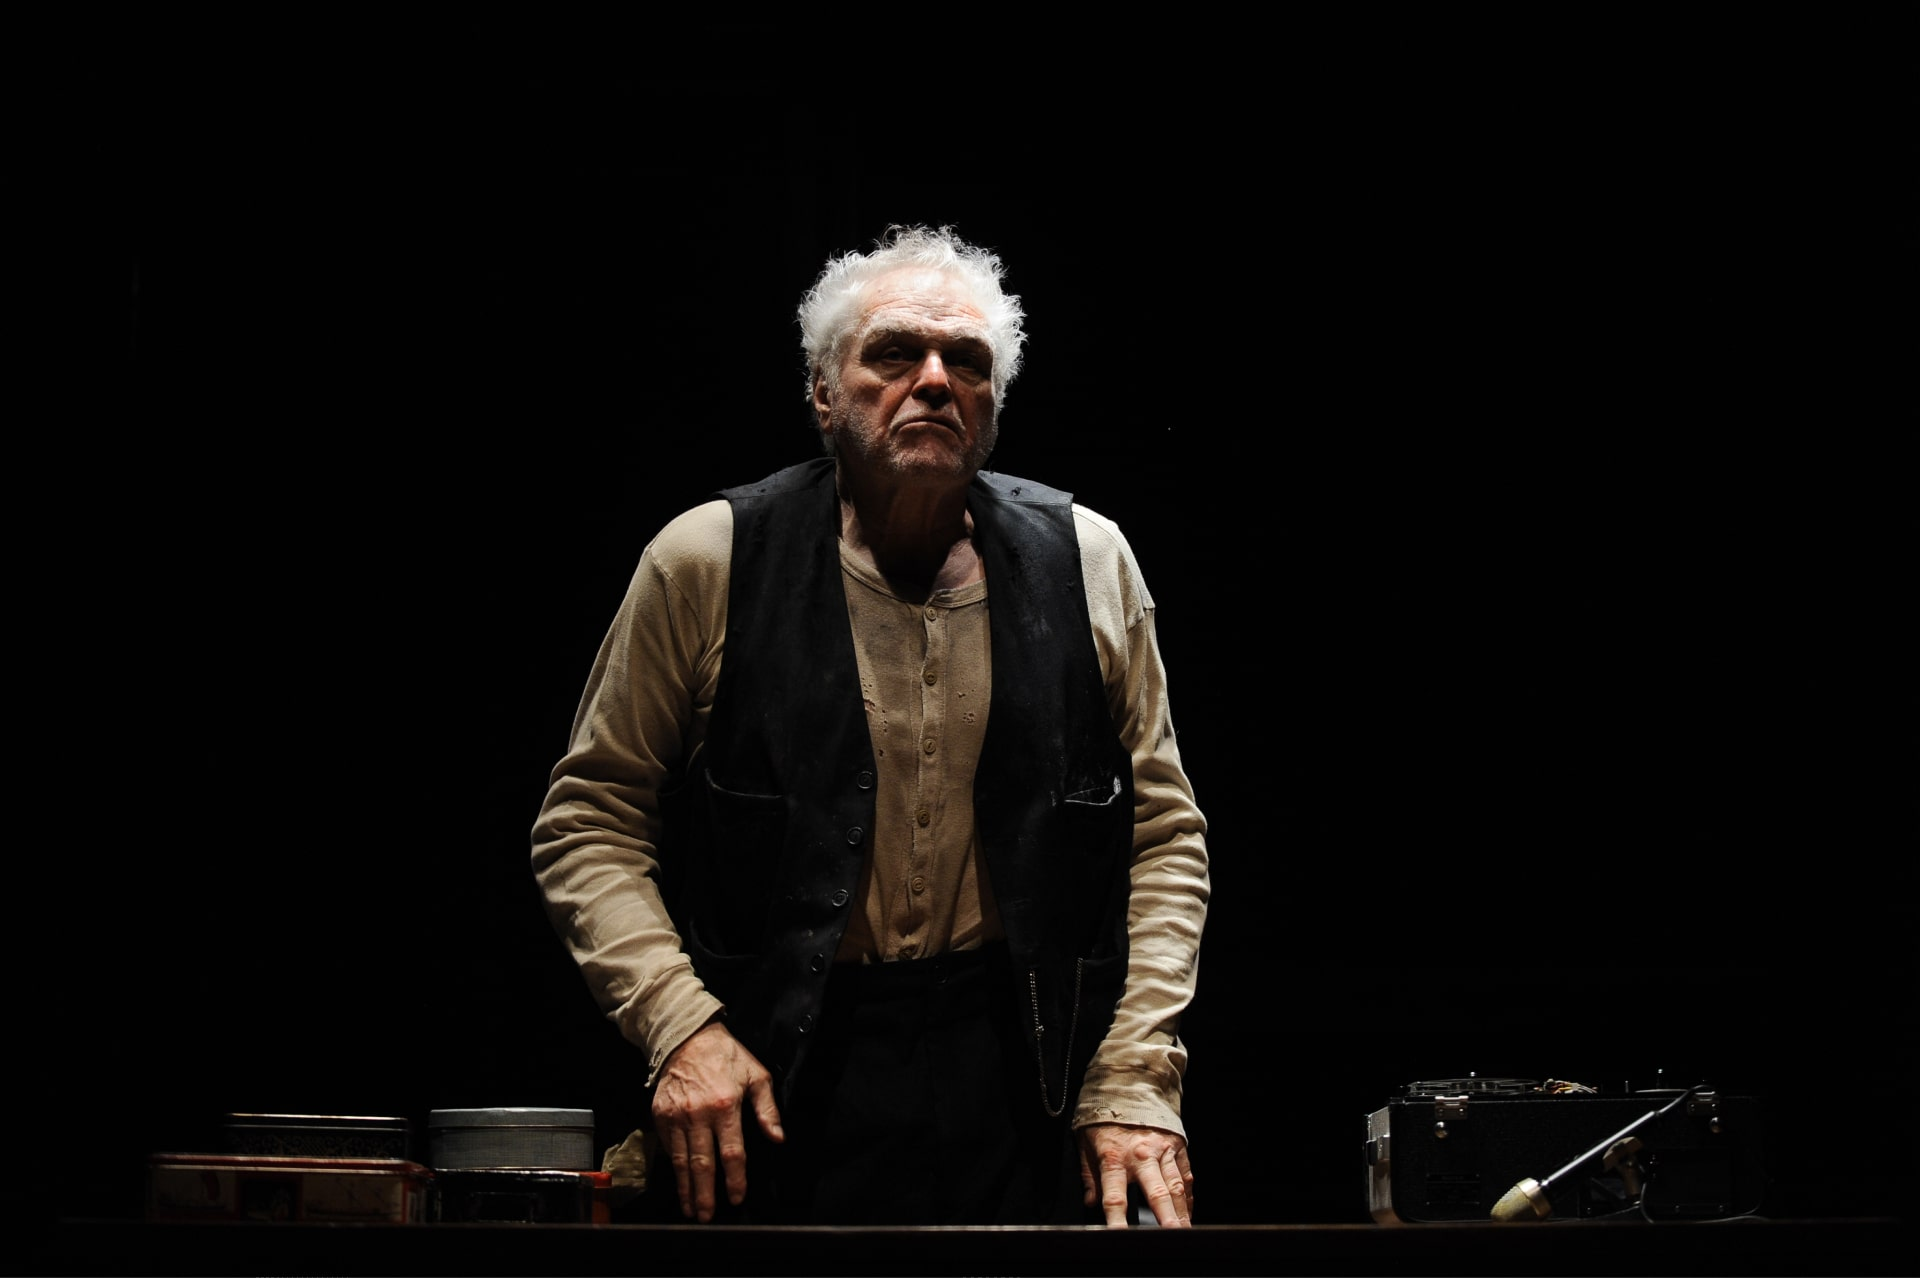 Scuffy older man in waistcoat stands fingers poised on desk under bright light.